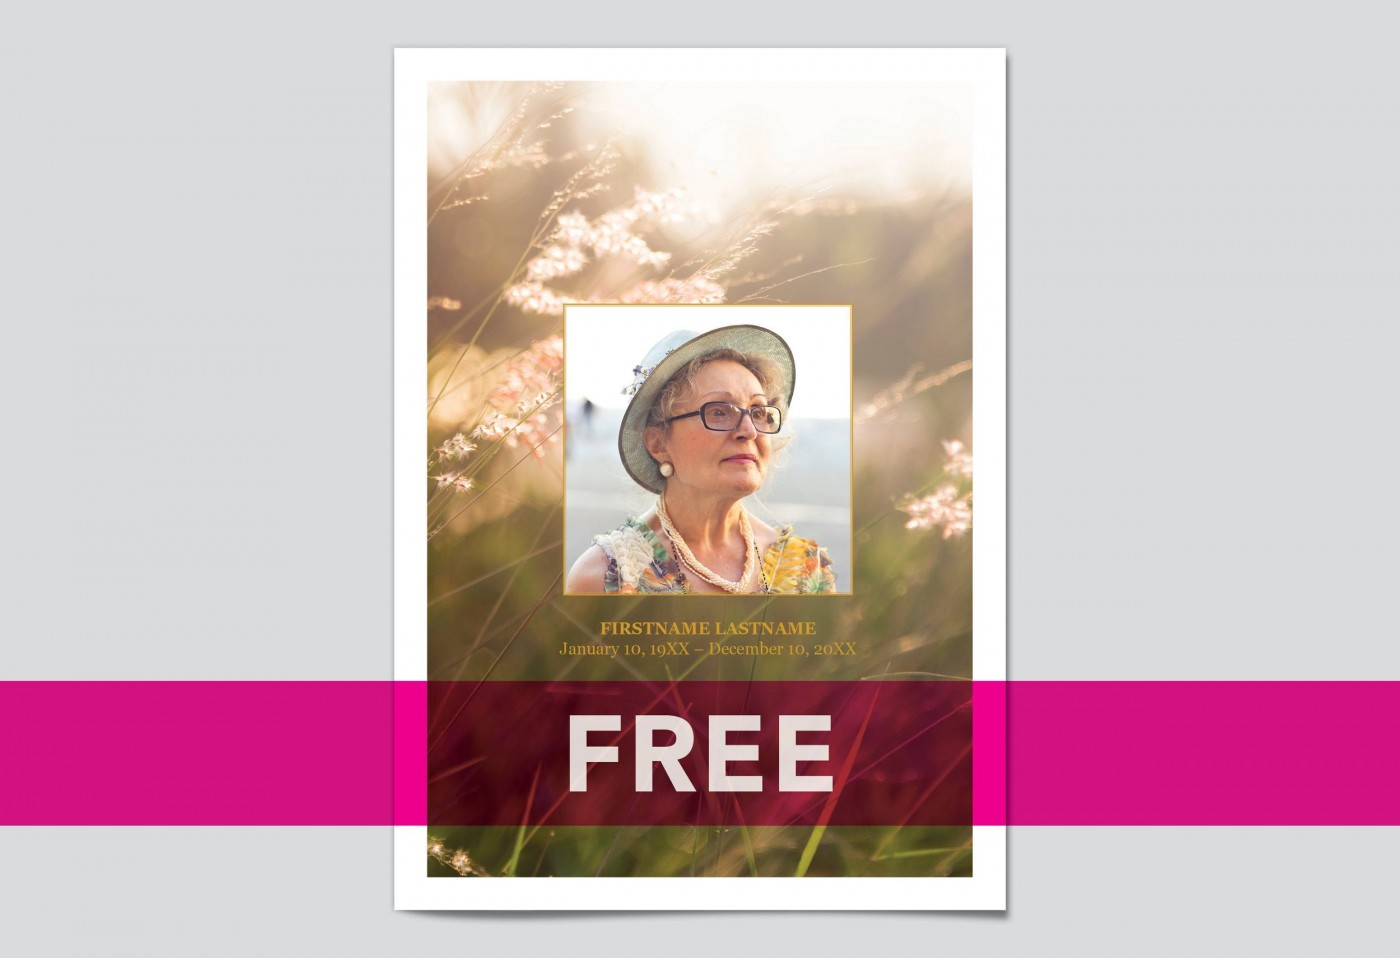 009 Impressive Free Editable Celebration Of Life Program Template Idea 1400